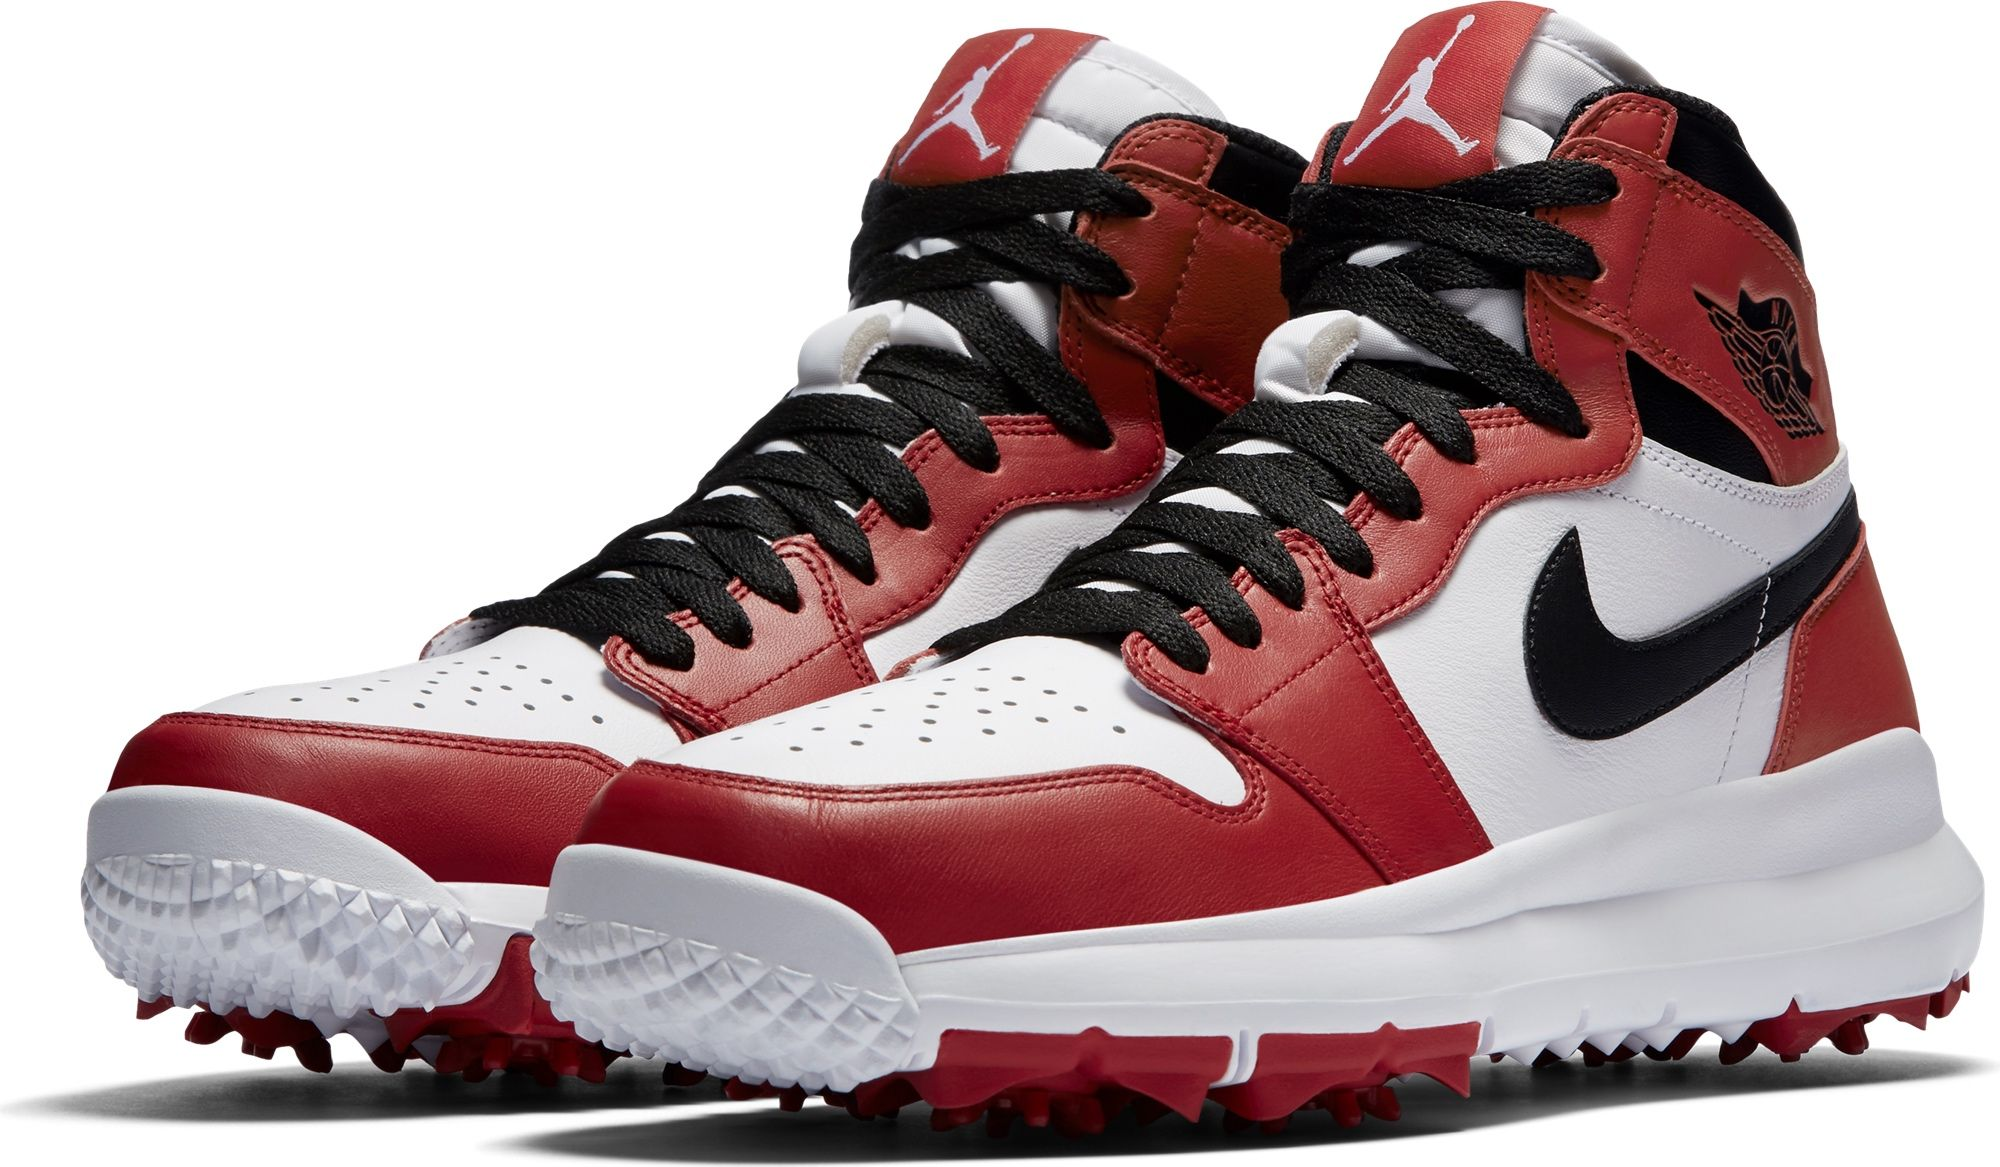 Nike Air Jordan Retro Golf Shoe - http://golfweek.com/2017